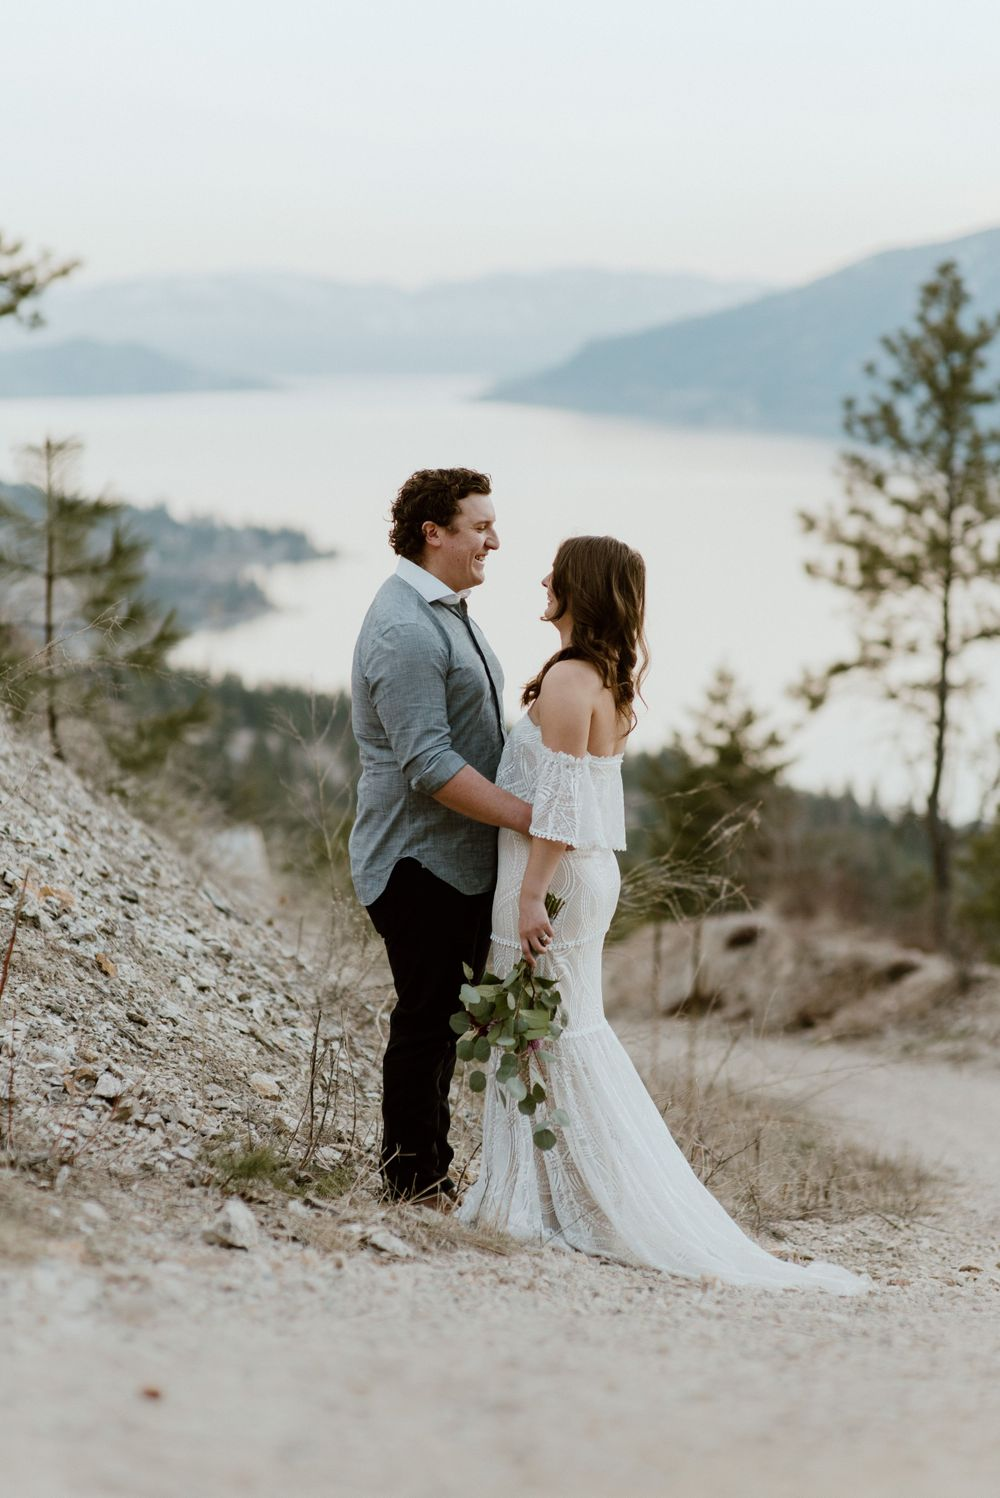 bohemian-bride-and-groom-elopement-on-a-mountain